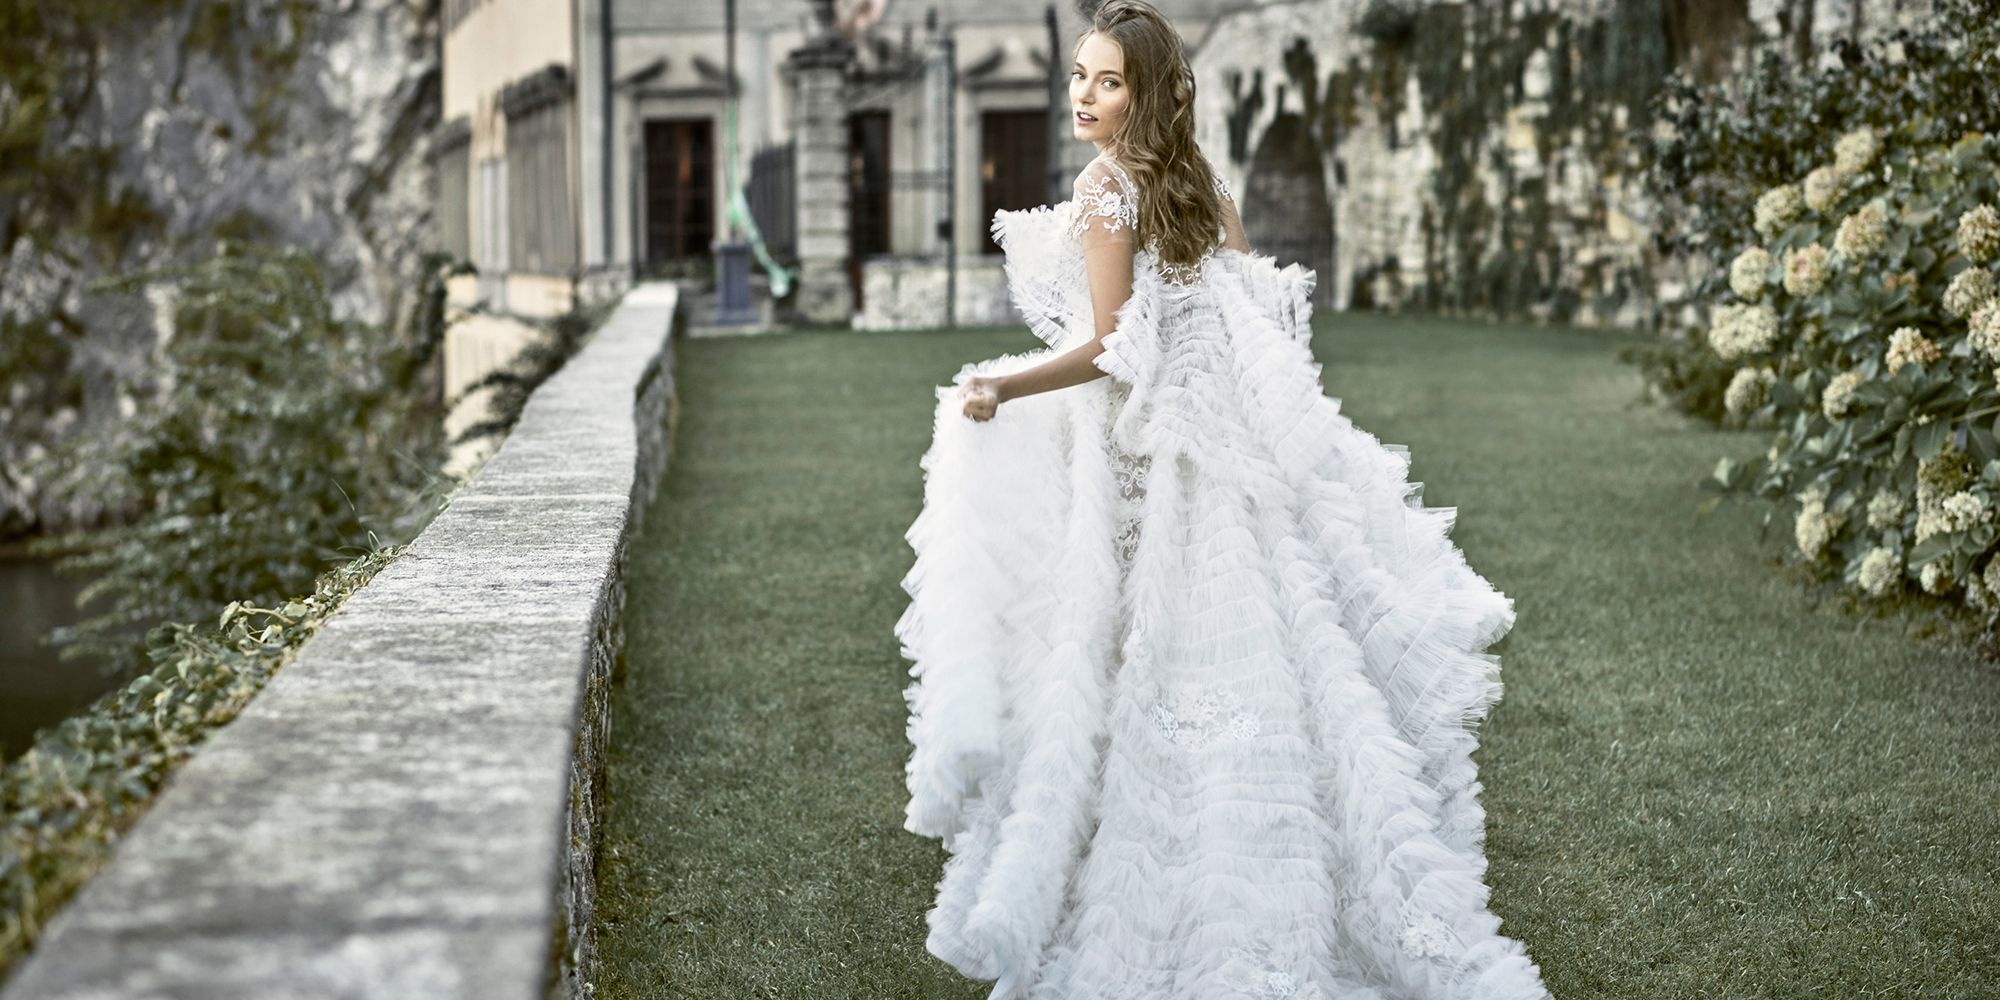 16 Fairytale Wedding Dresses Romantic Gowns For Your Wedding Day